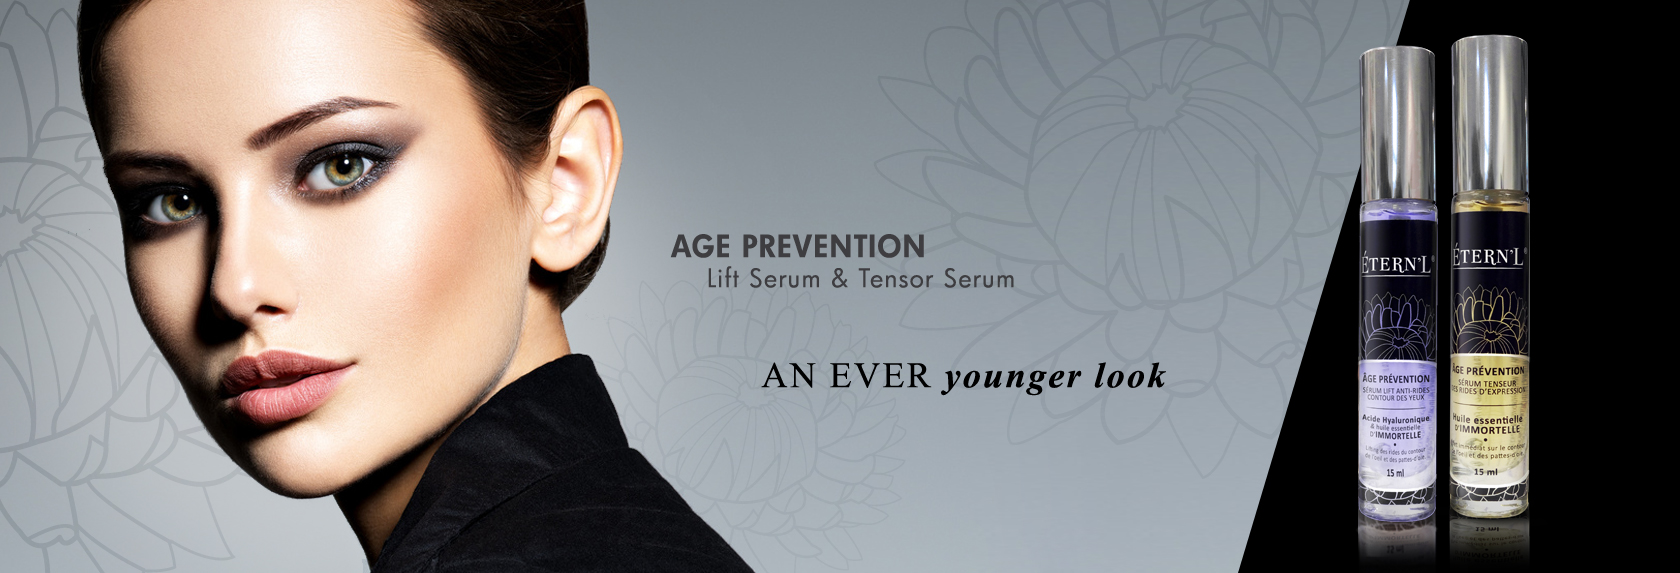 Étern'L AGE PREVENTION - CONTOURS OF THE EYES SERUM